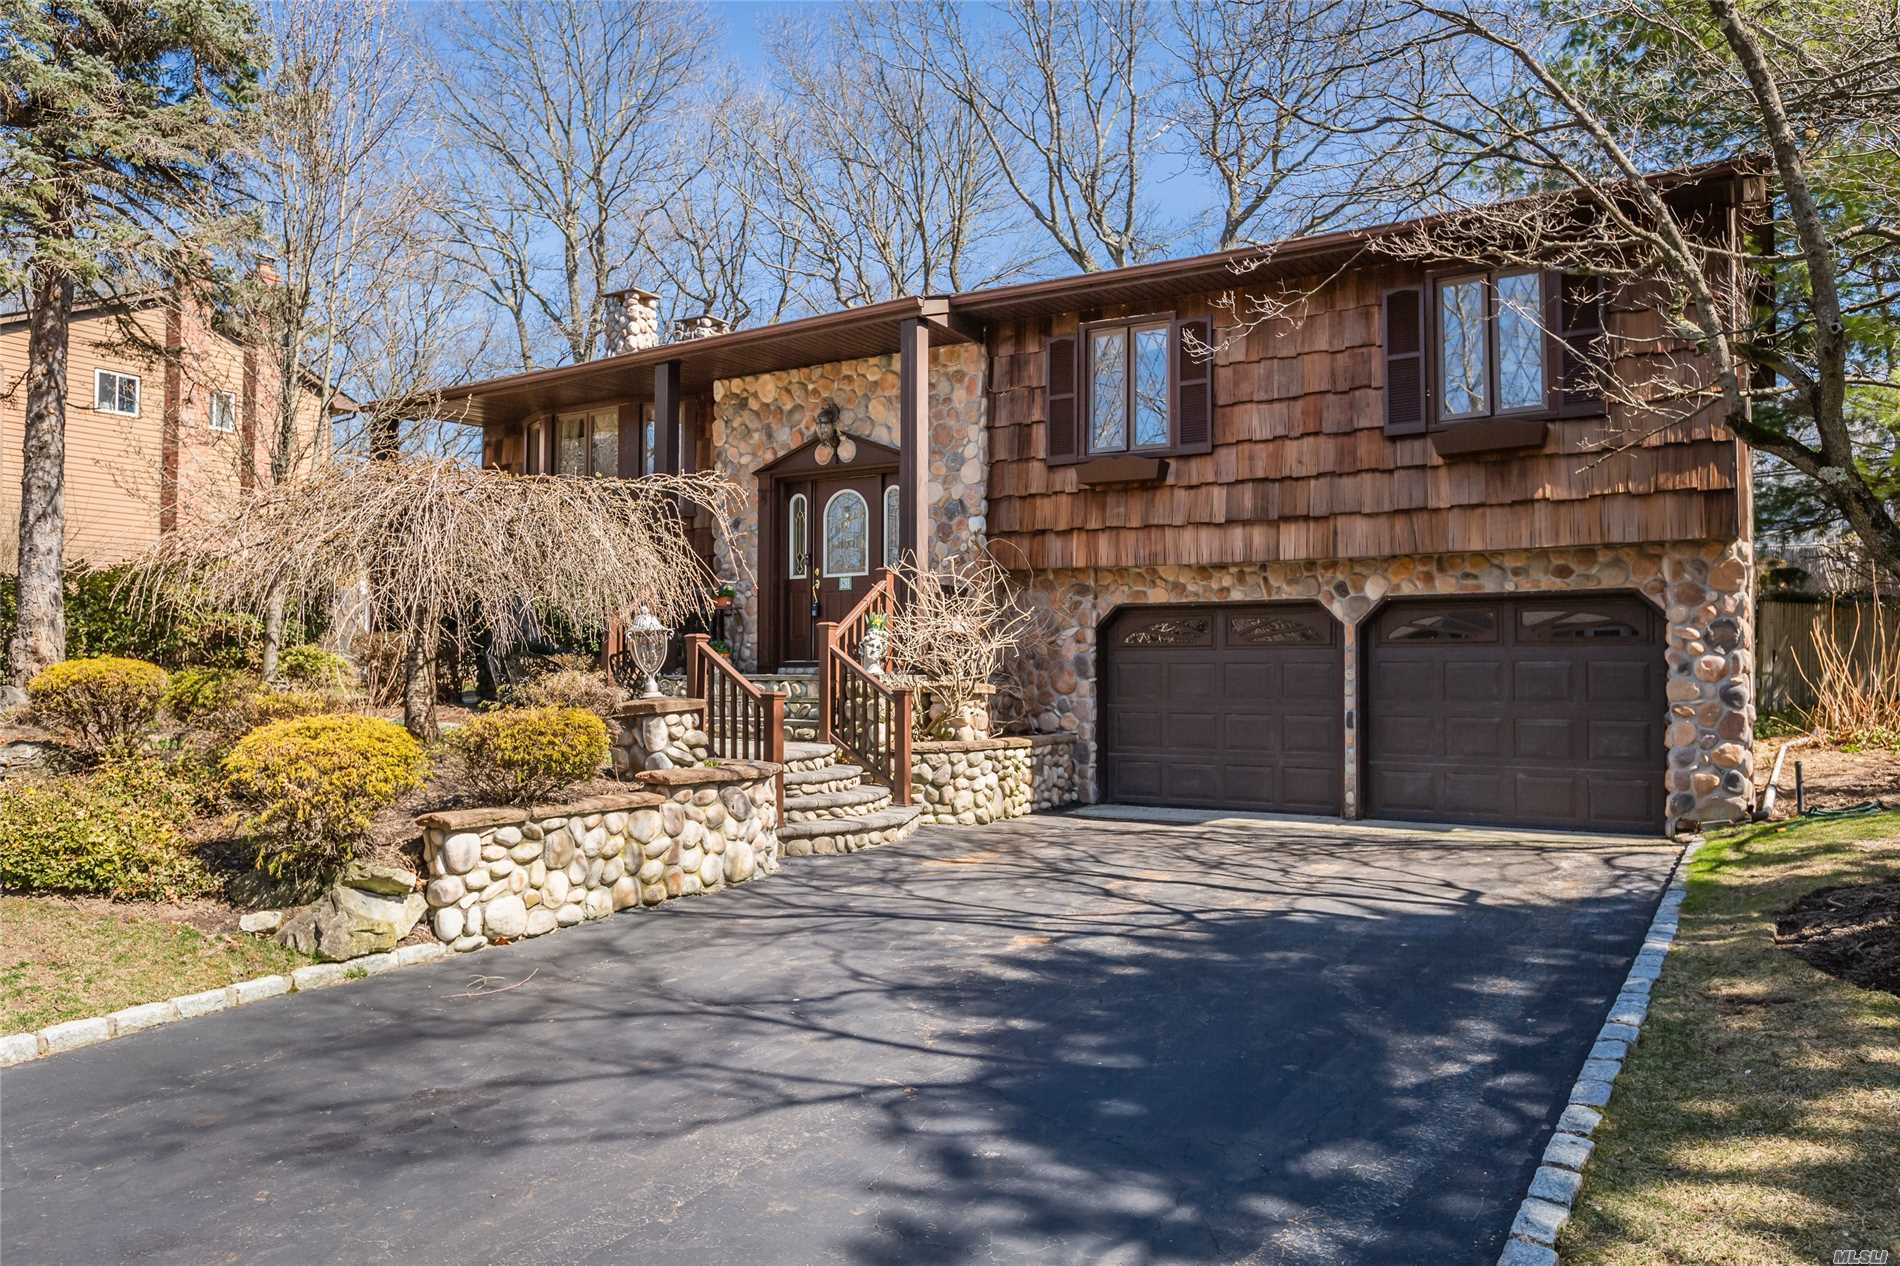 Offered In Value Ranch $489, 000-$568, 875. Come See This 4 Bedroom Hi-Ranch In The Desirable Commack Bird Community. Amenities Include Updated Spacious Granite Kitchen Wood Floors; Generator; Raised Panel Doors; Renovated Bath W/ Jet Tub; Pool & New Roof.  Commack Schools( Wood Park + Saw Mill Elem). Do Not Miss This One!